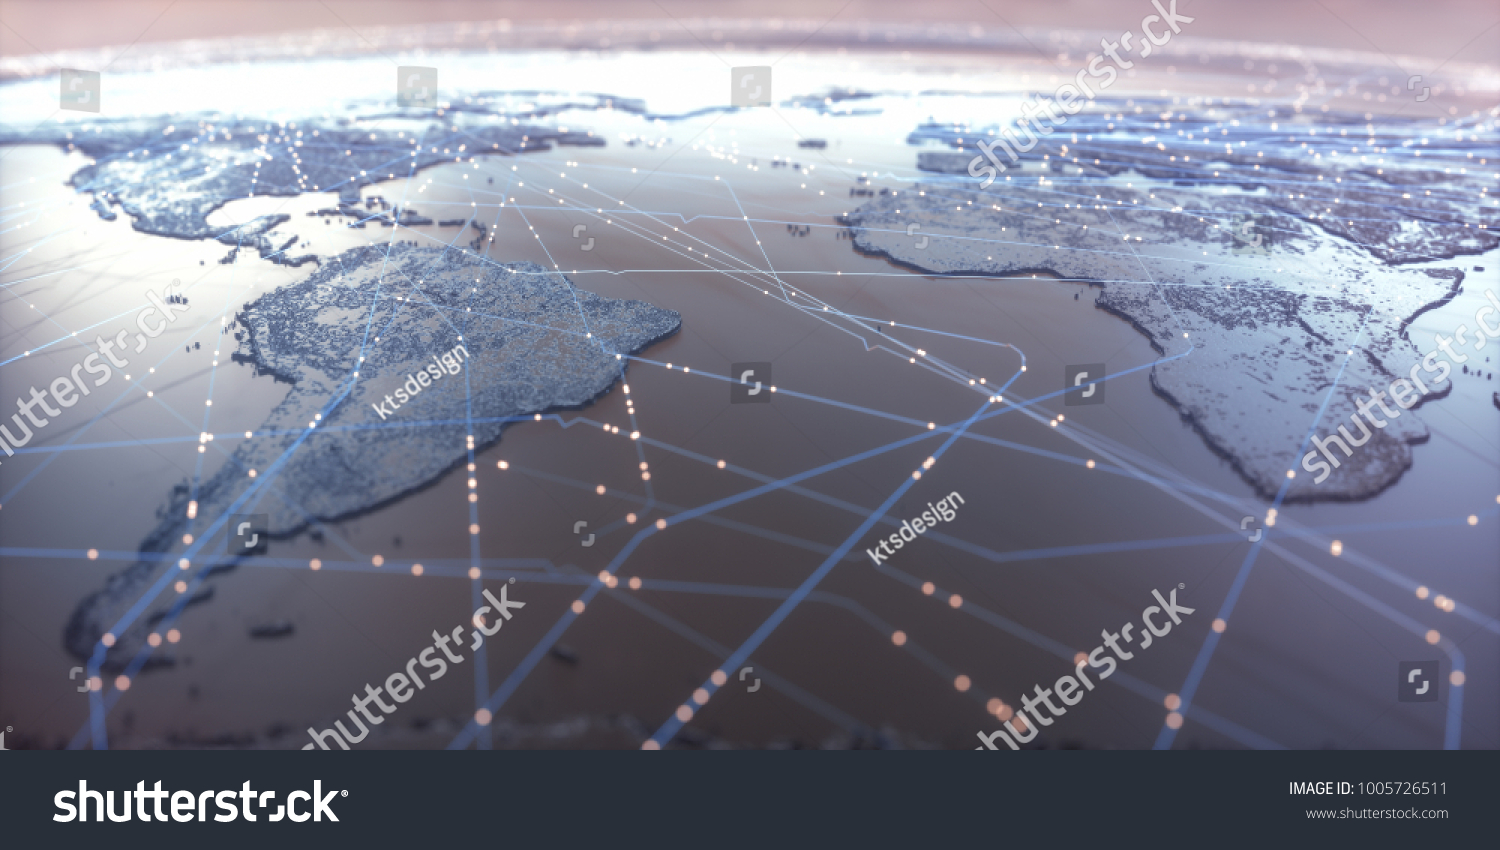 stock-photo--d-illustration-world-map-with-satellite-data-connections-connectivity-across-the-world-1005726511.jpg